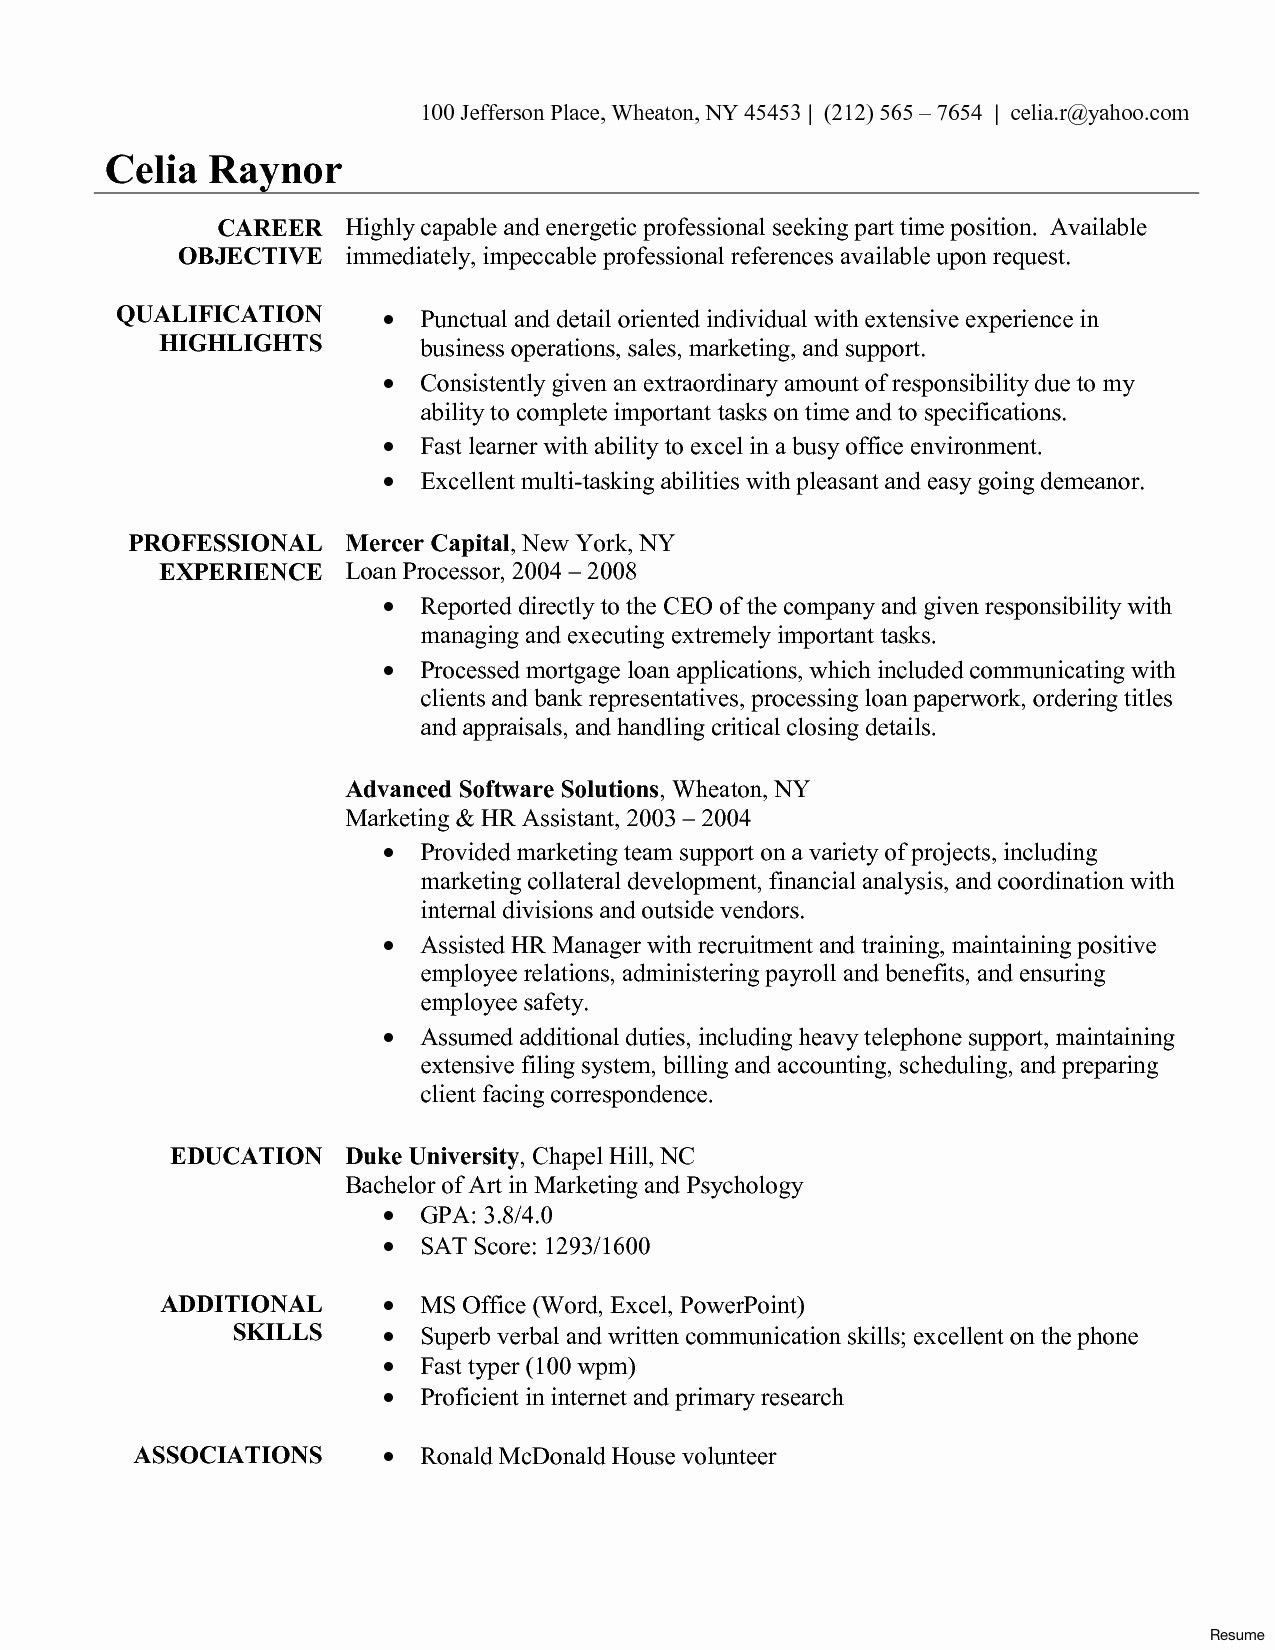 80 Awesome Photos Of Resume Writing Learning Objectives